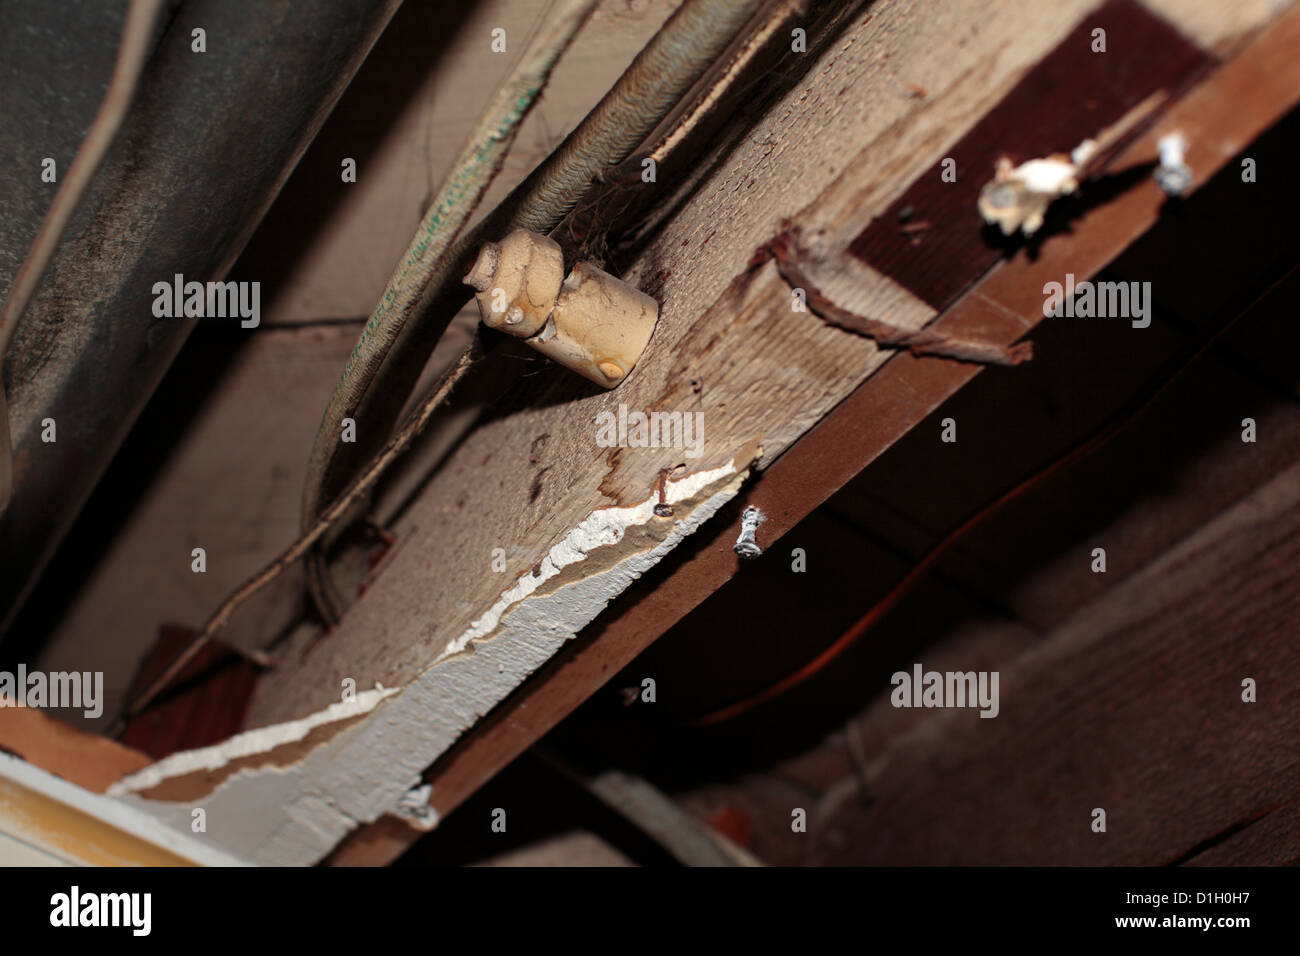 Hidden Wiring Stock Photos & Hidden Wiring Stock Images - Alamy on